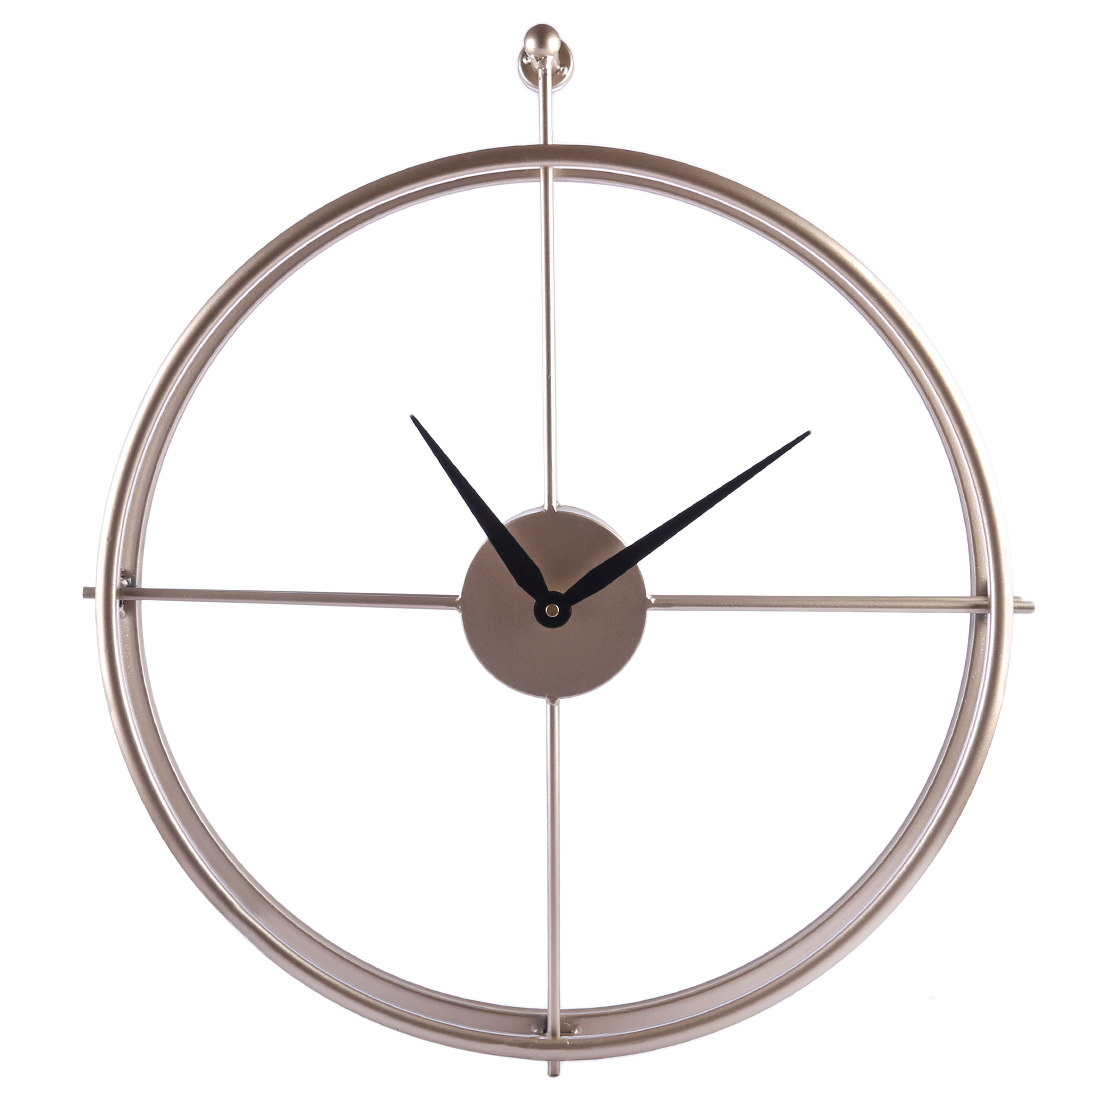 Hot Unique 55cm Large Brief European Style Silent Iron Wall Clock Modern Design For Home Office Decor Hanging Wall Watch Clocks gold metal duvar saati